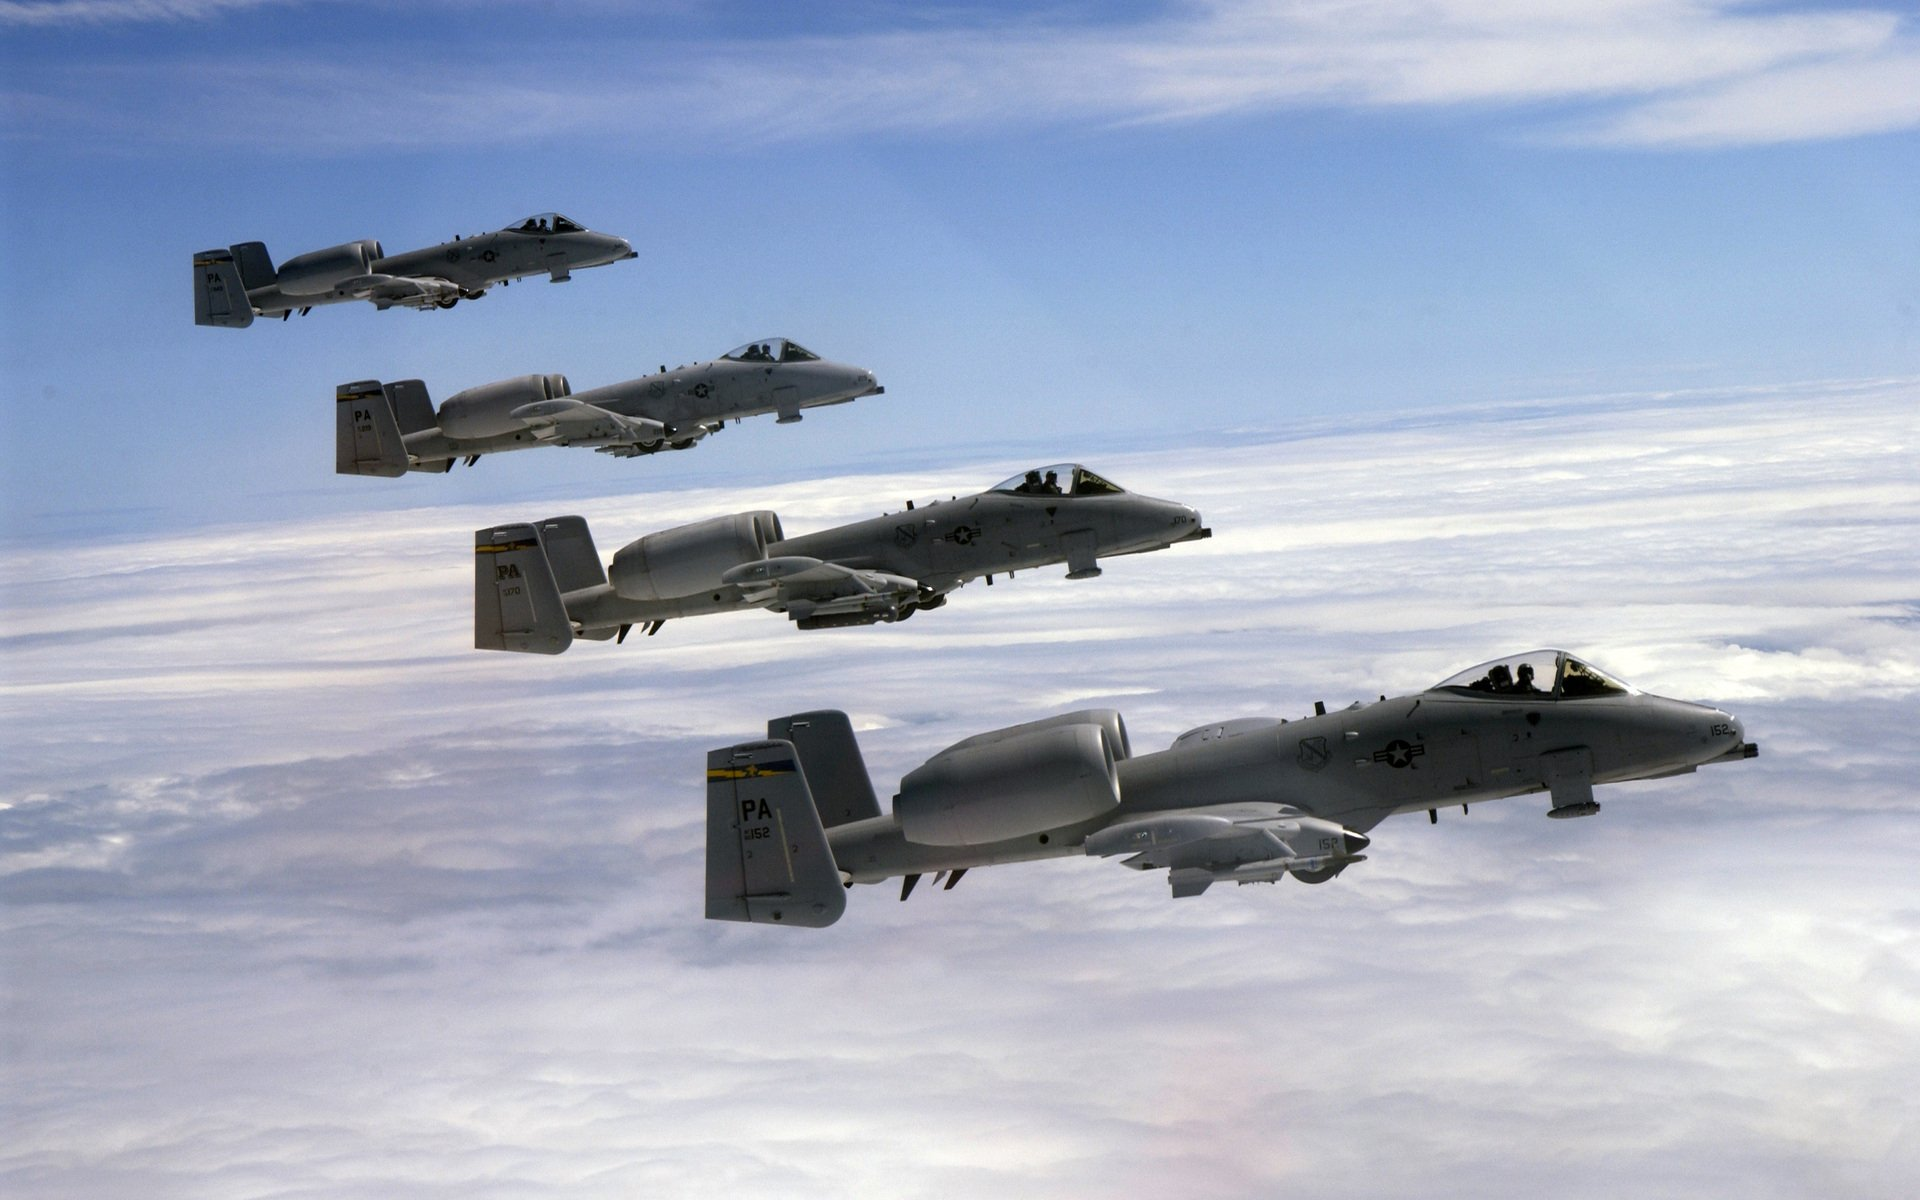 Military - Fairchild Republic A-10 Thunderbolt II  Warthog Wallpaper